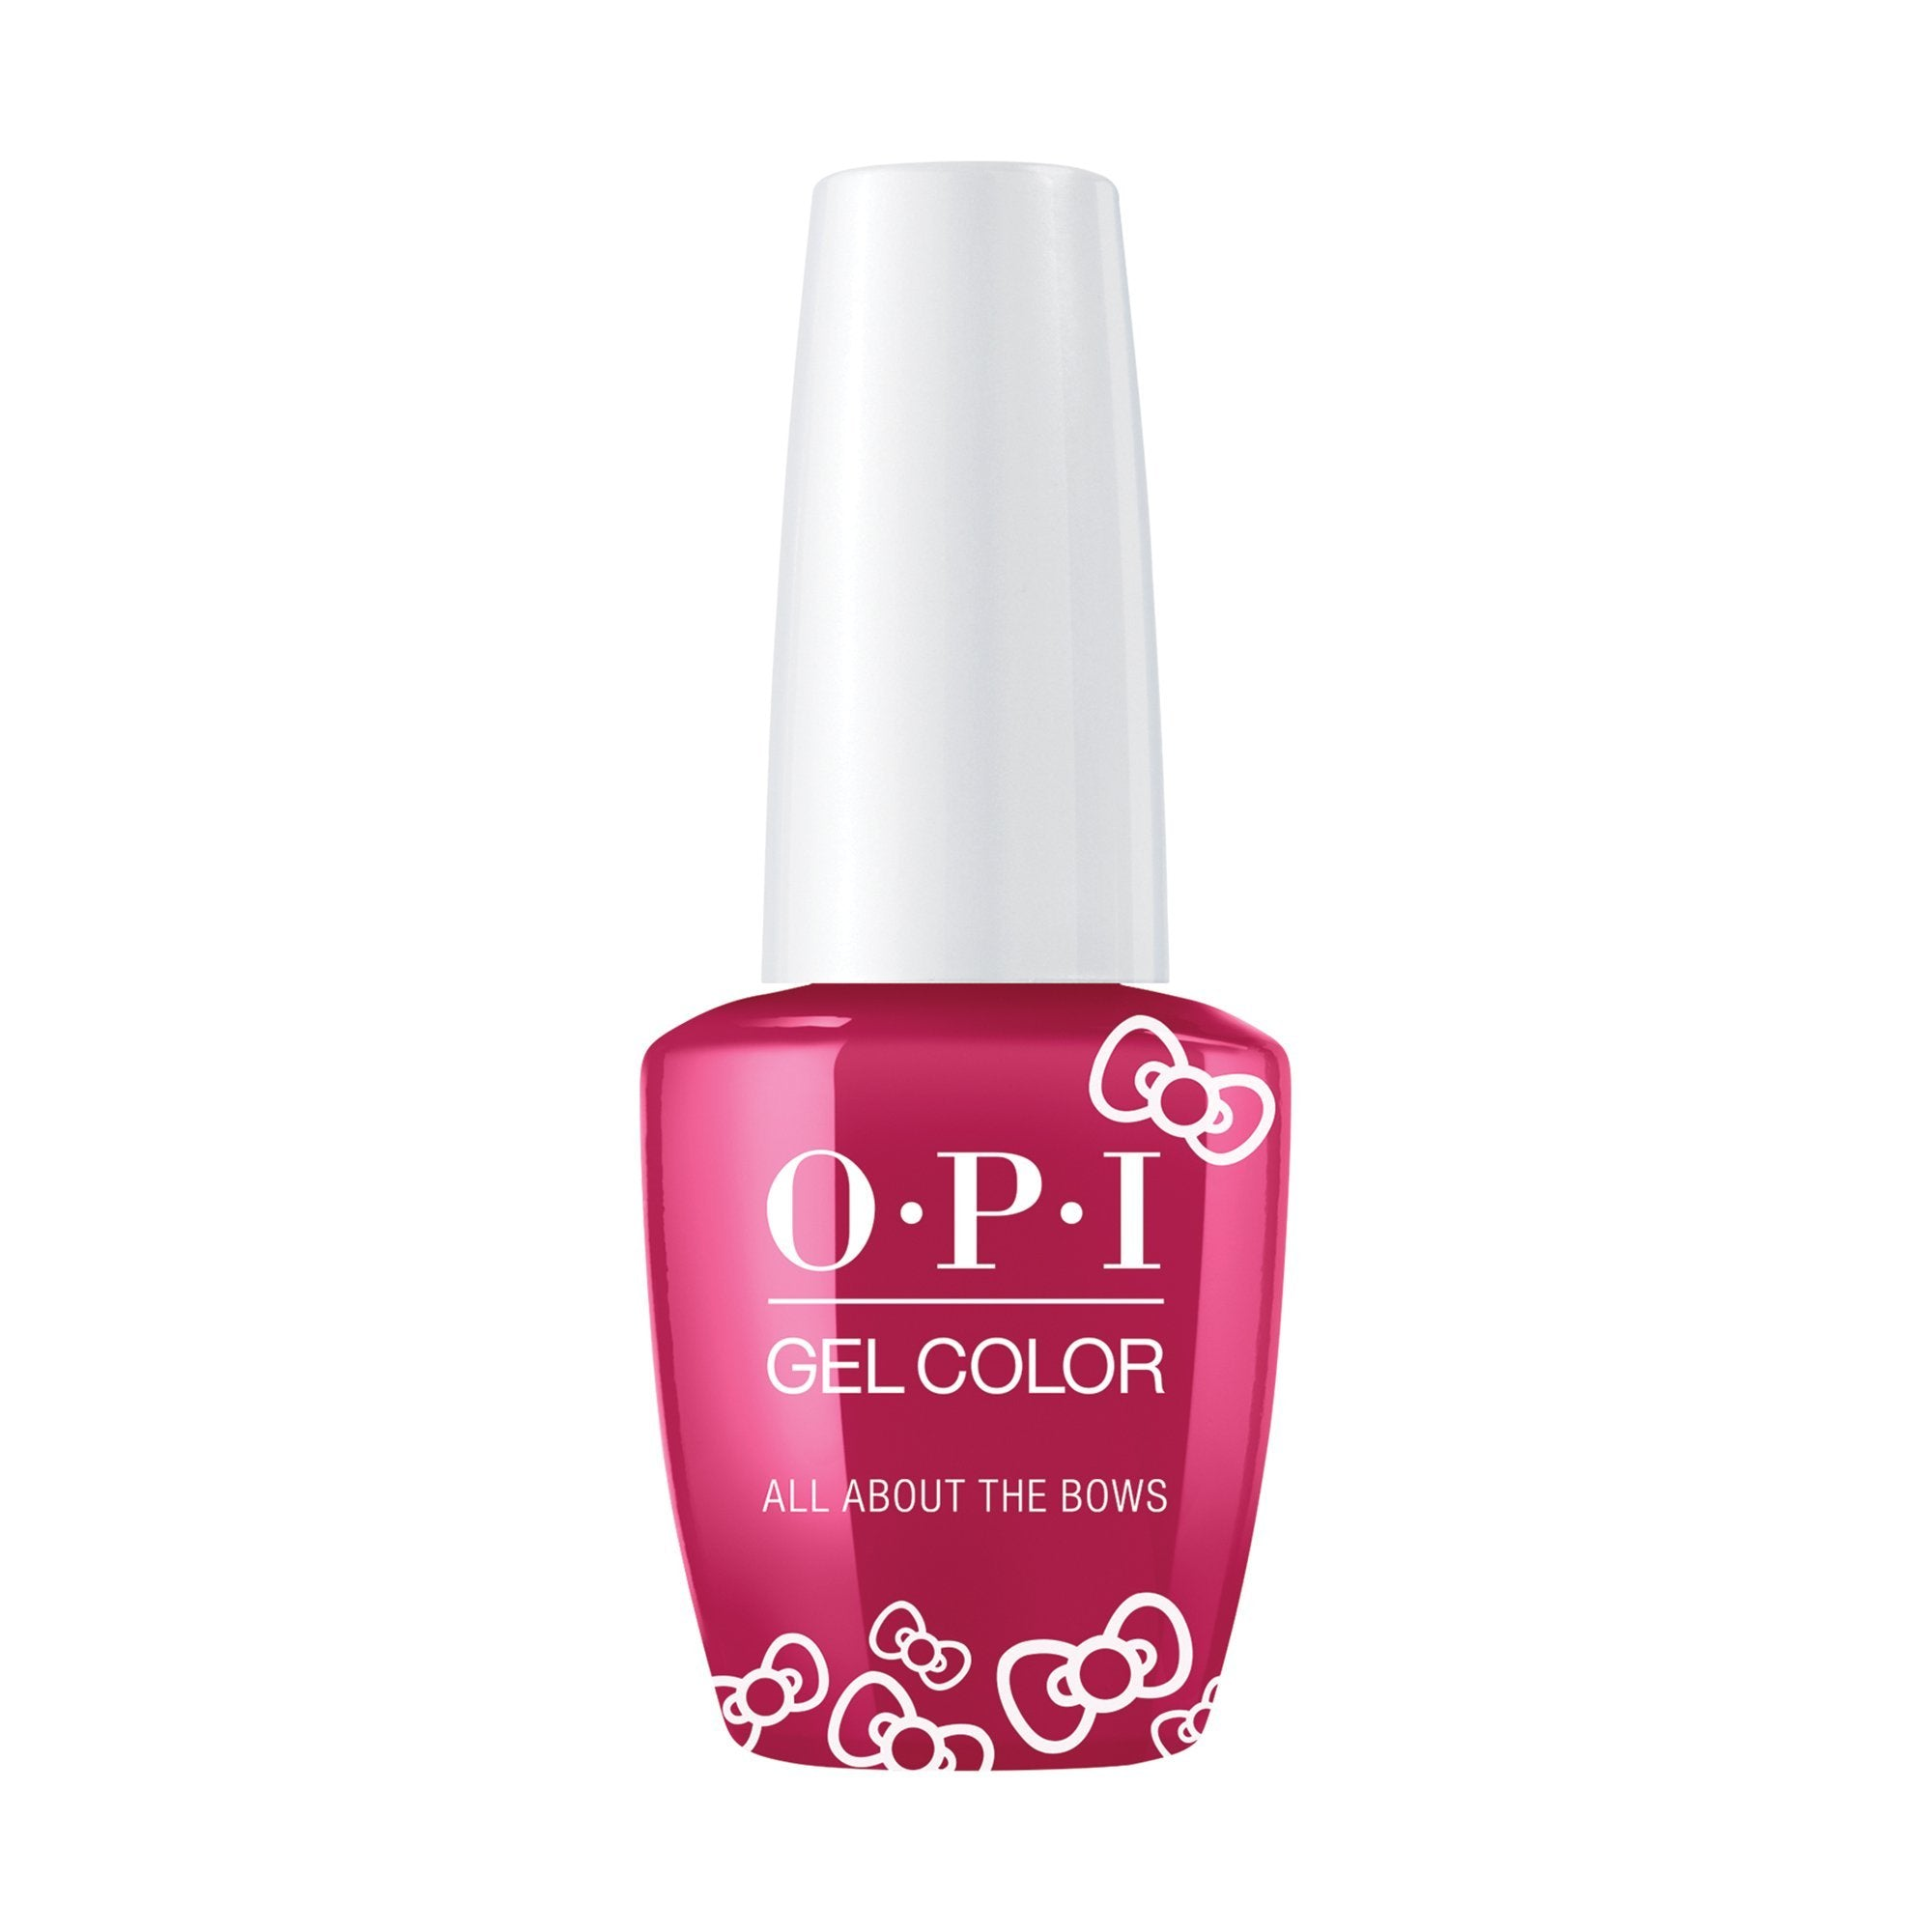 OPI, Hello Kitty GelColor All About the Bows,  0.5 fl oz